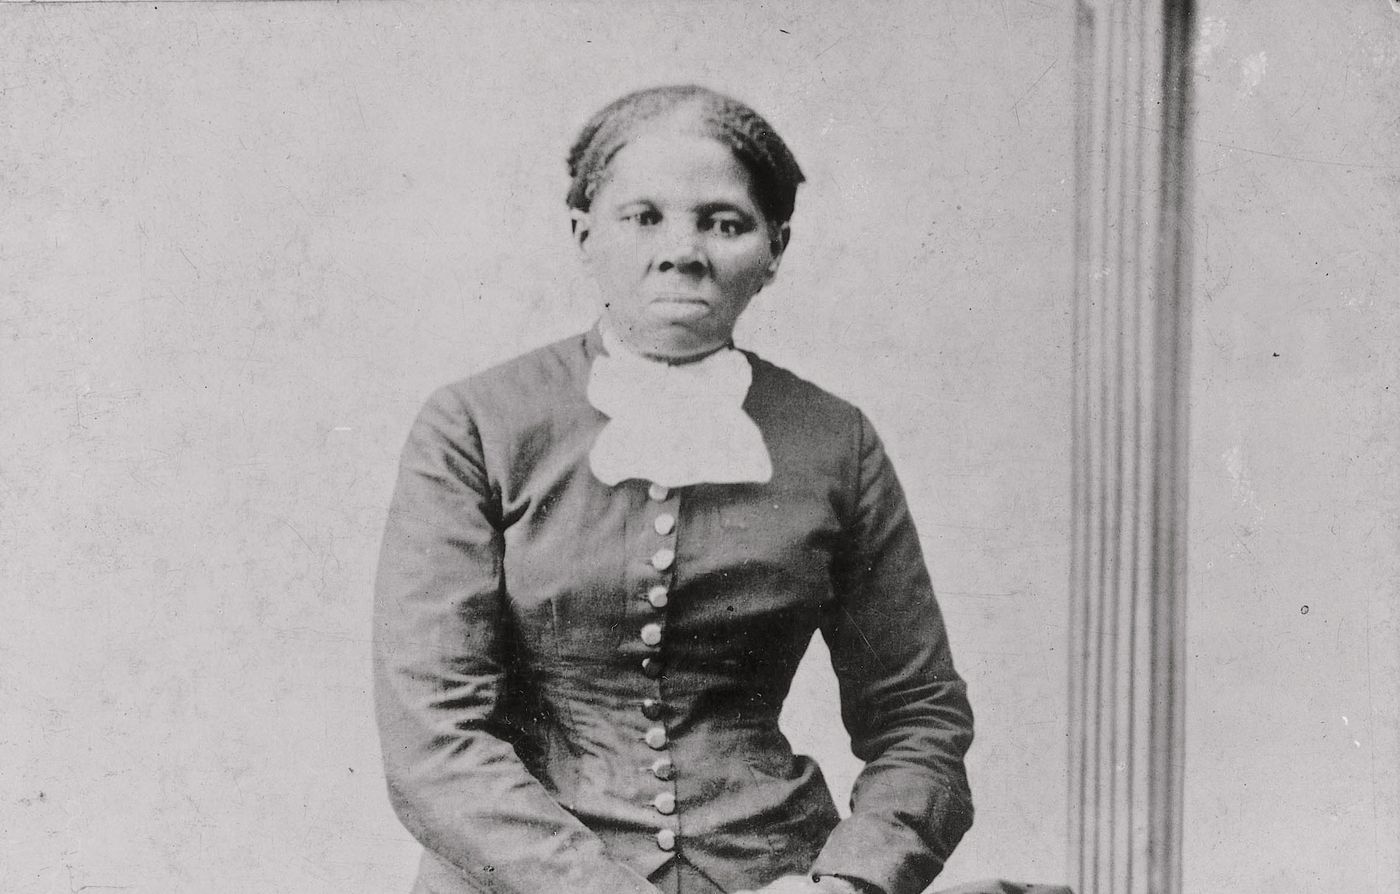 Inspector general to probe Trump administration over Harriet Tubman $20 bill